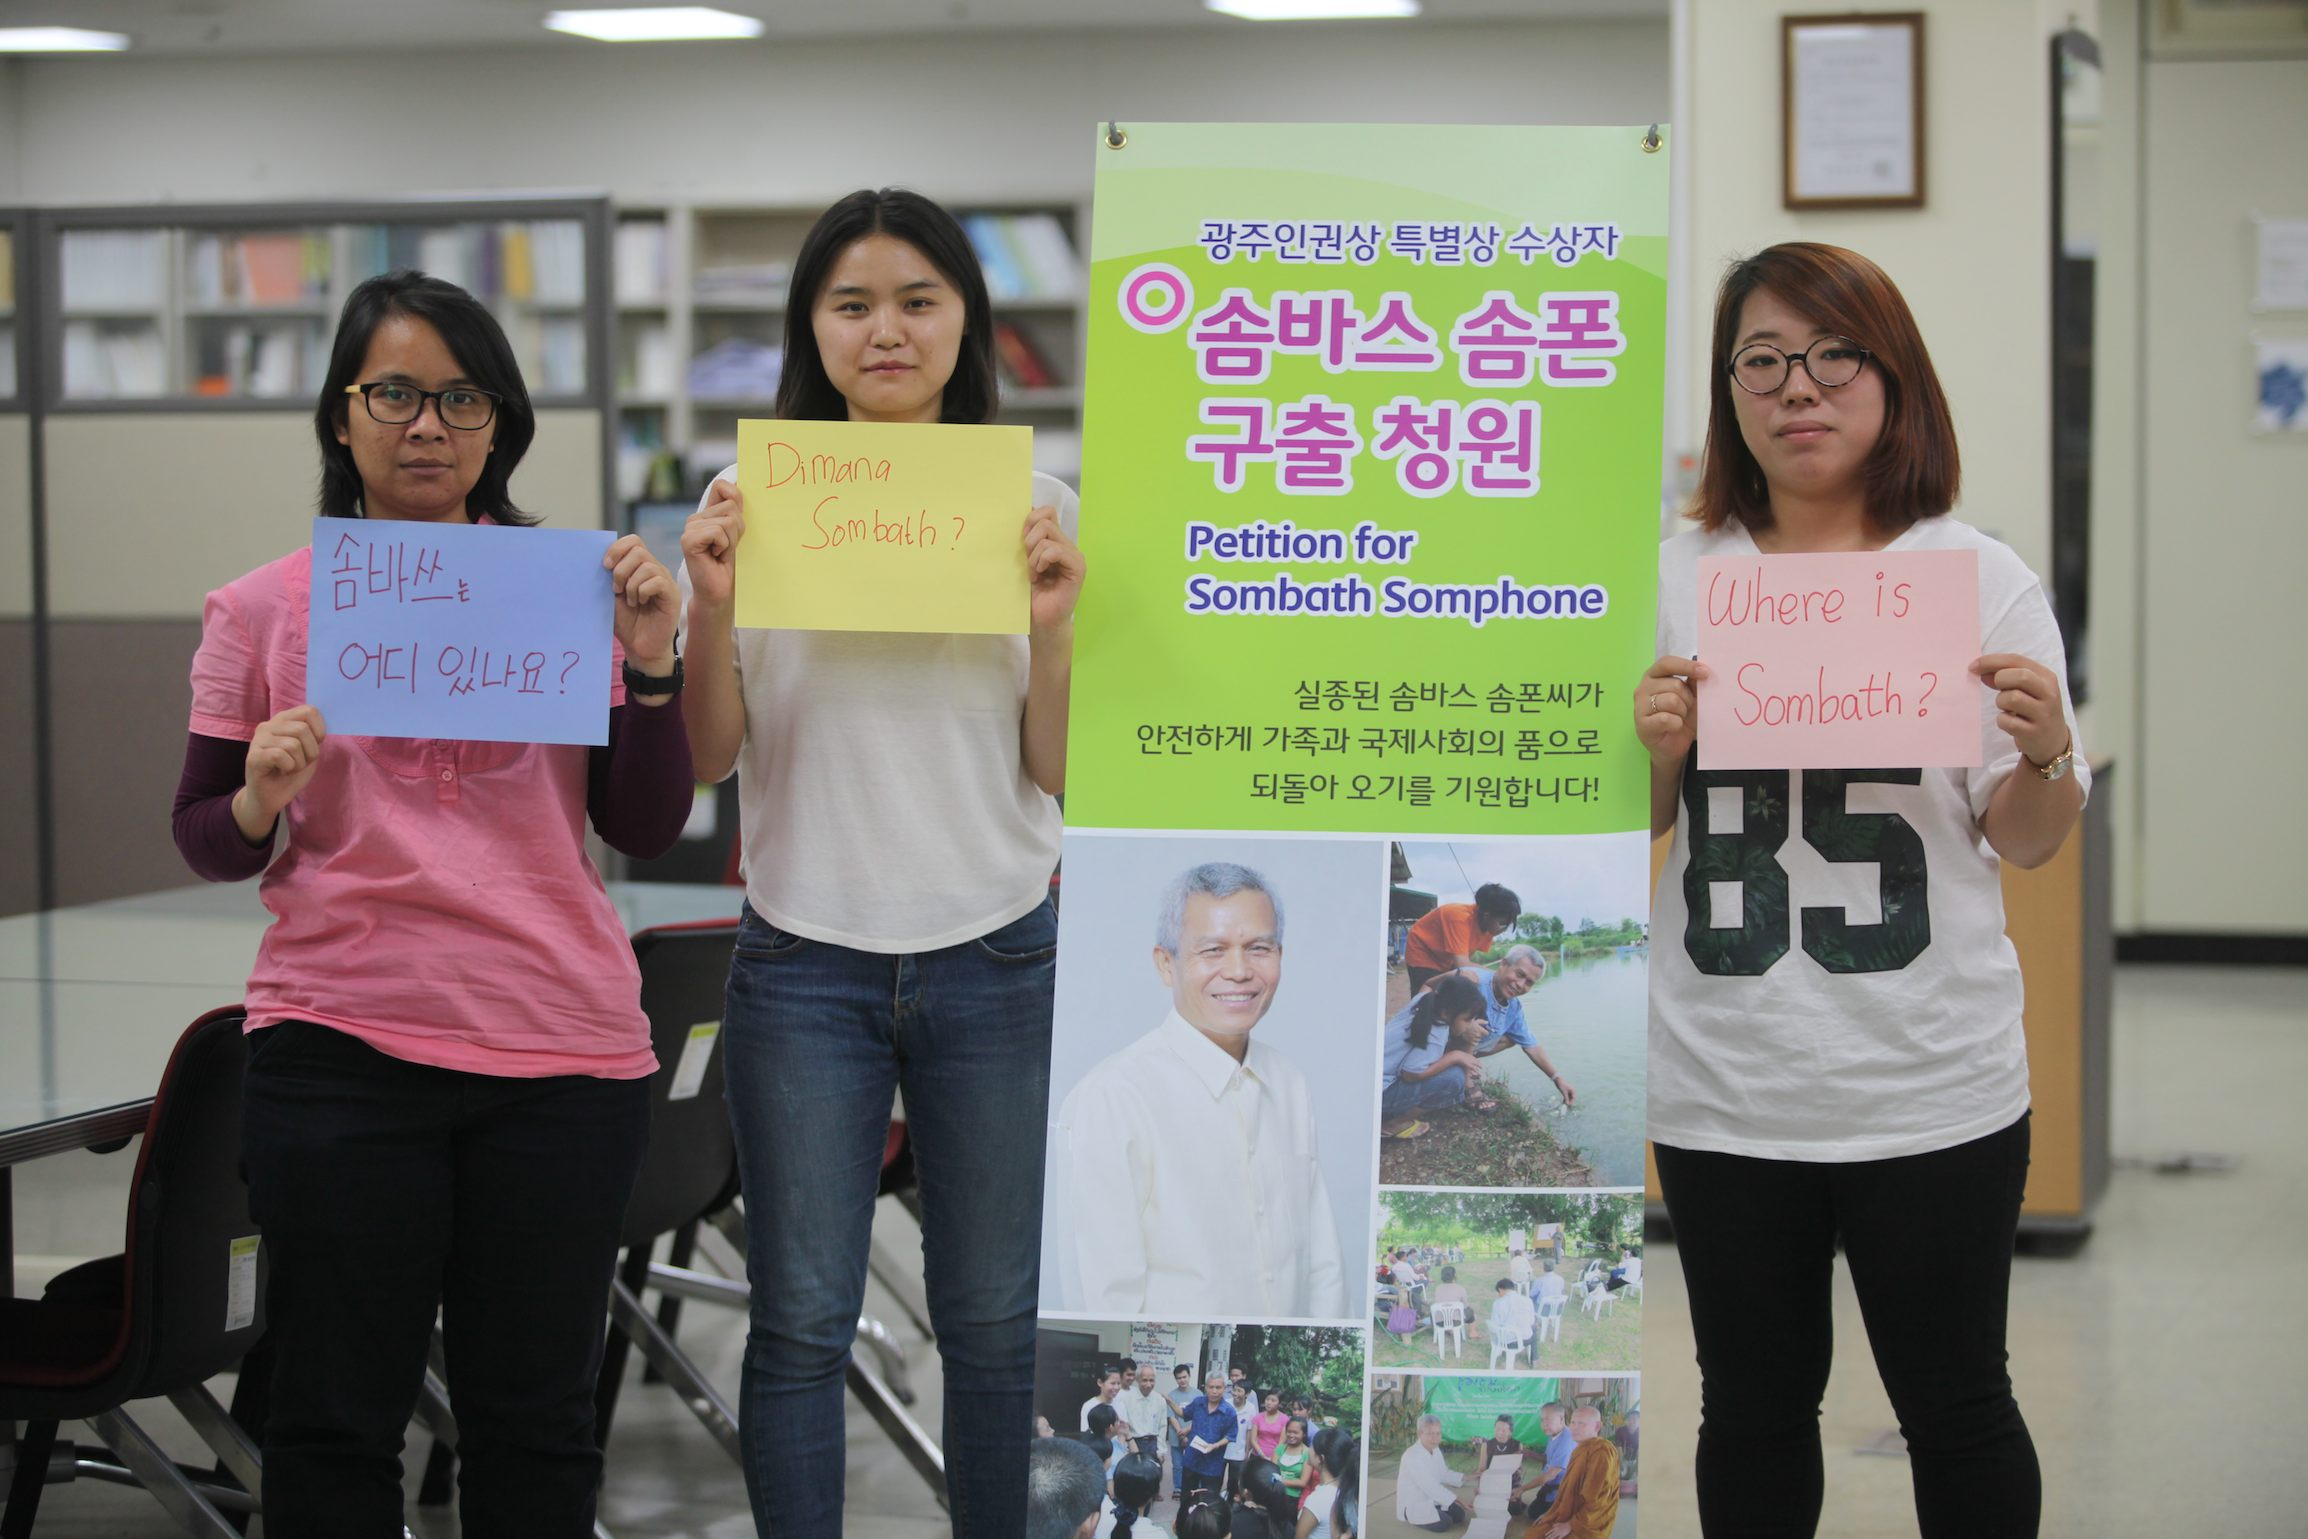 Seoul, May 18 Memorial Foundation-2015